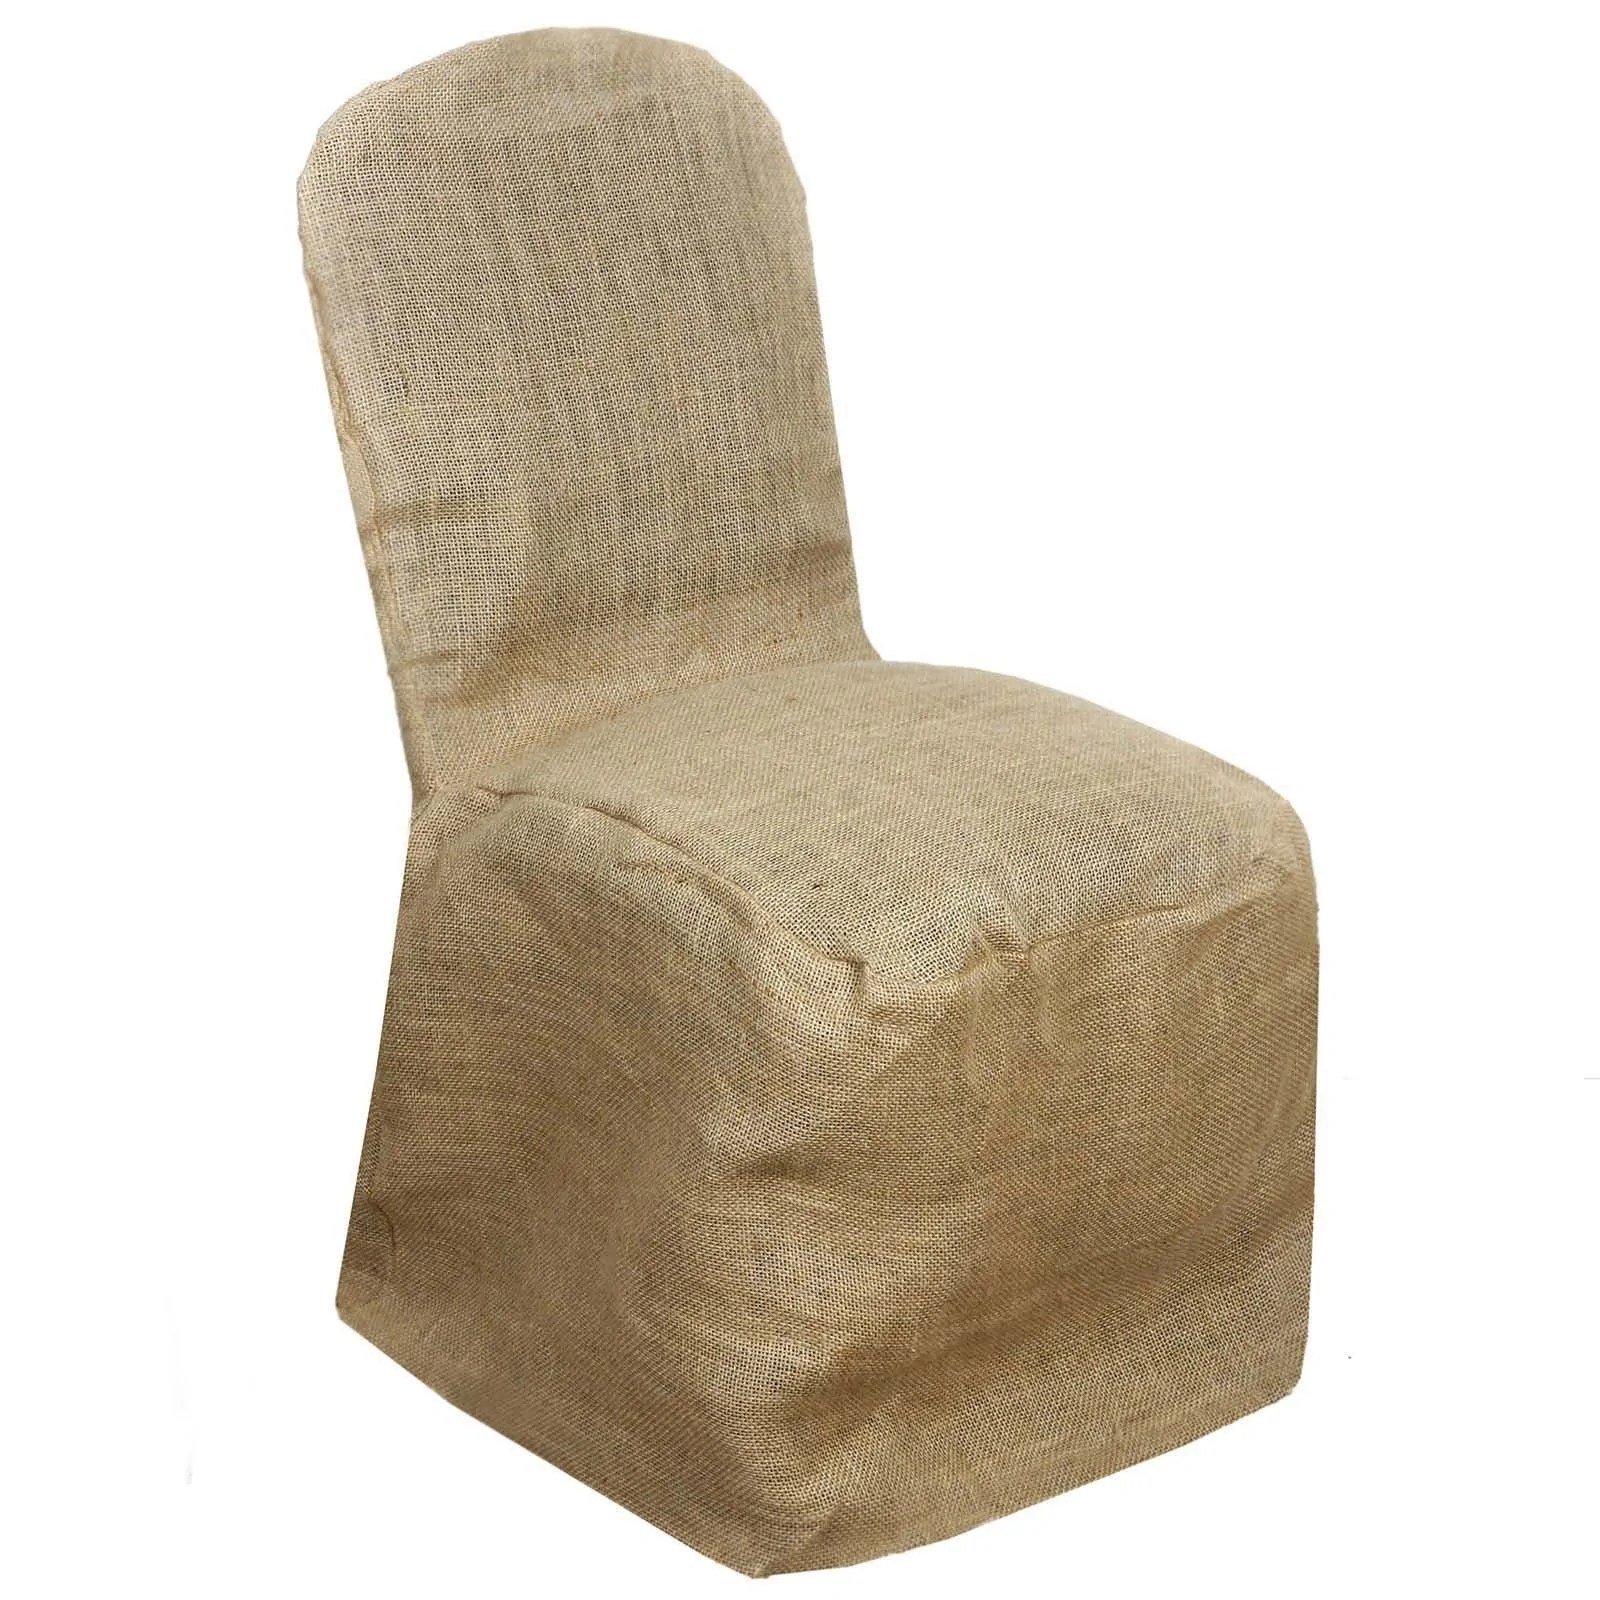 burlap chair covers for folding chairs wheelchair jevil natural jute banquet cover tablecloths factory